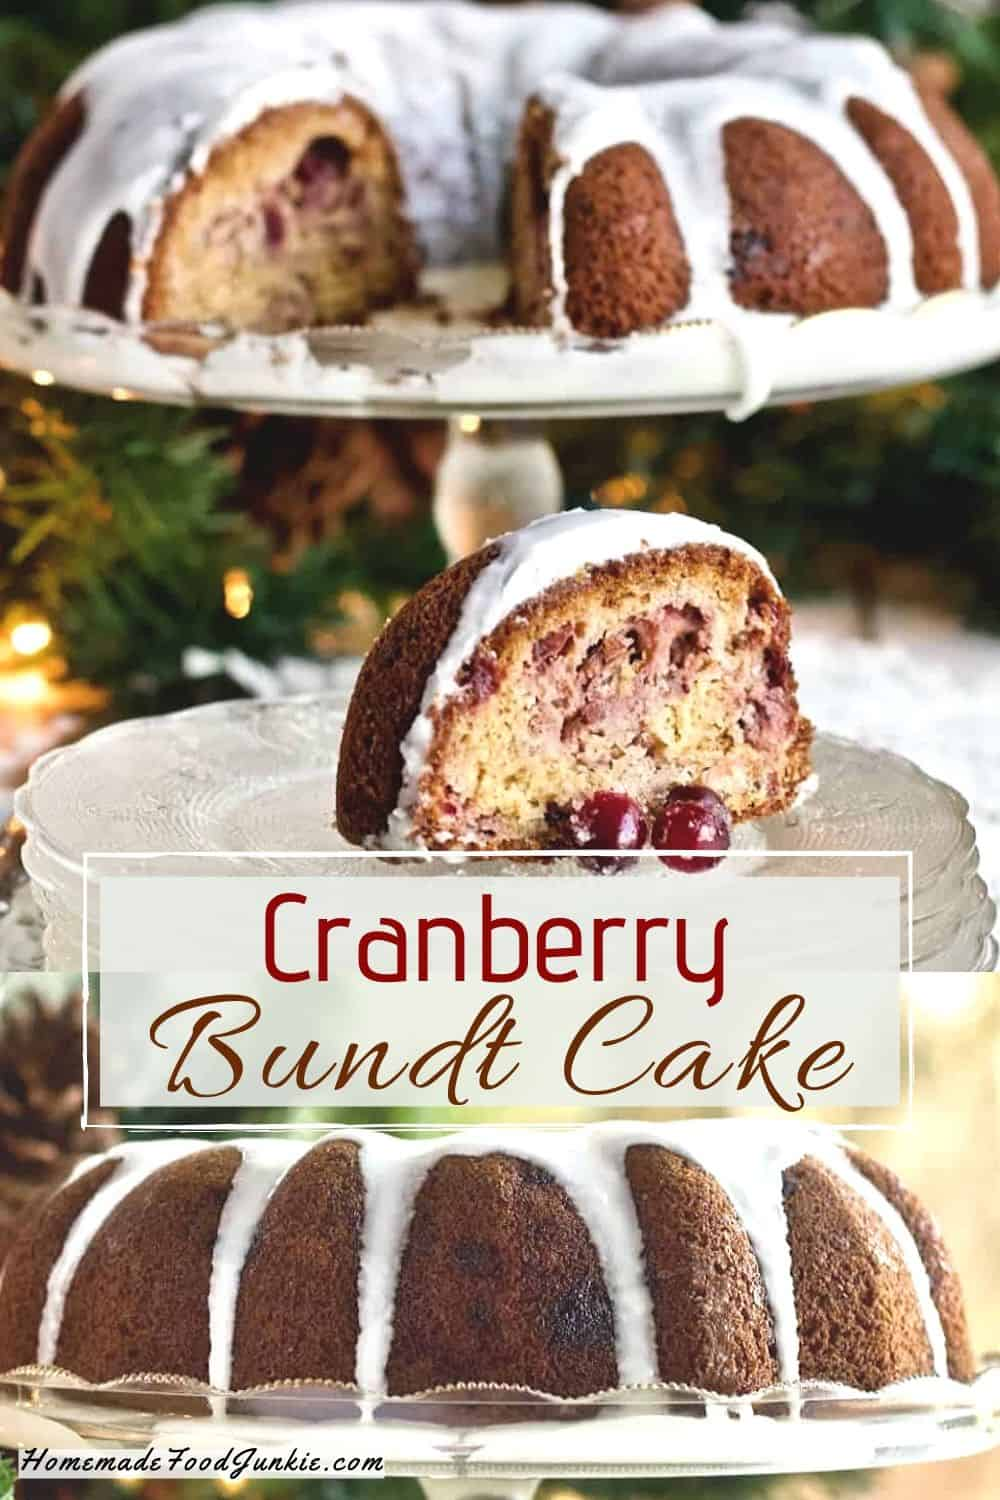 Cranberry Bundt Cake-pin image